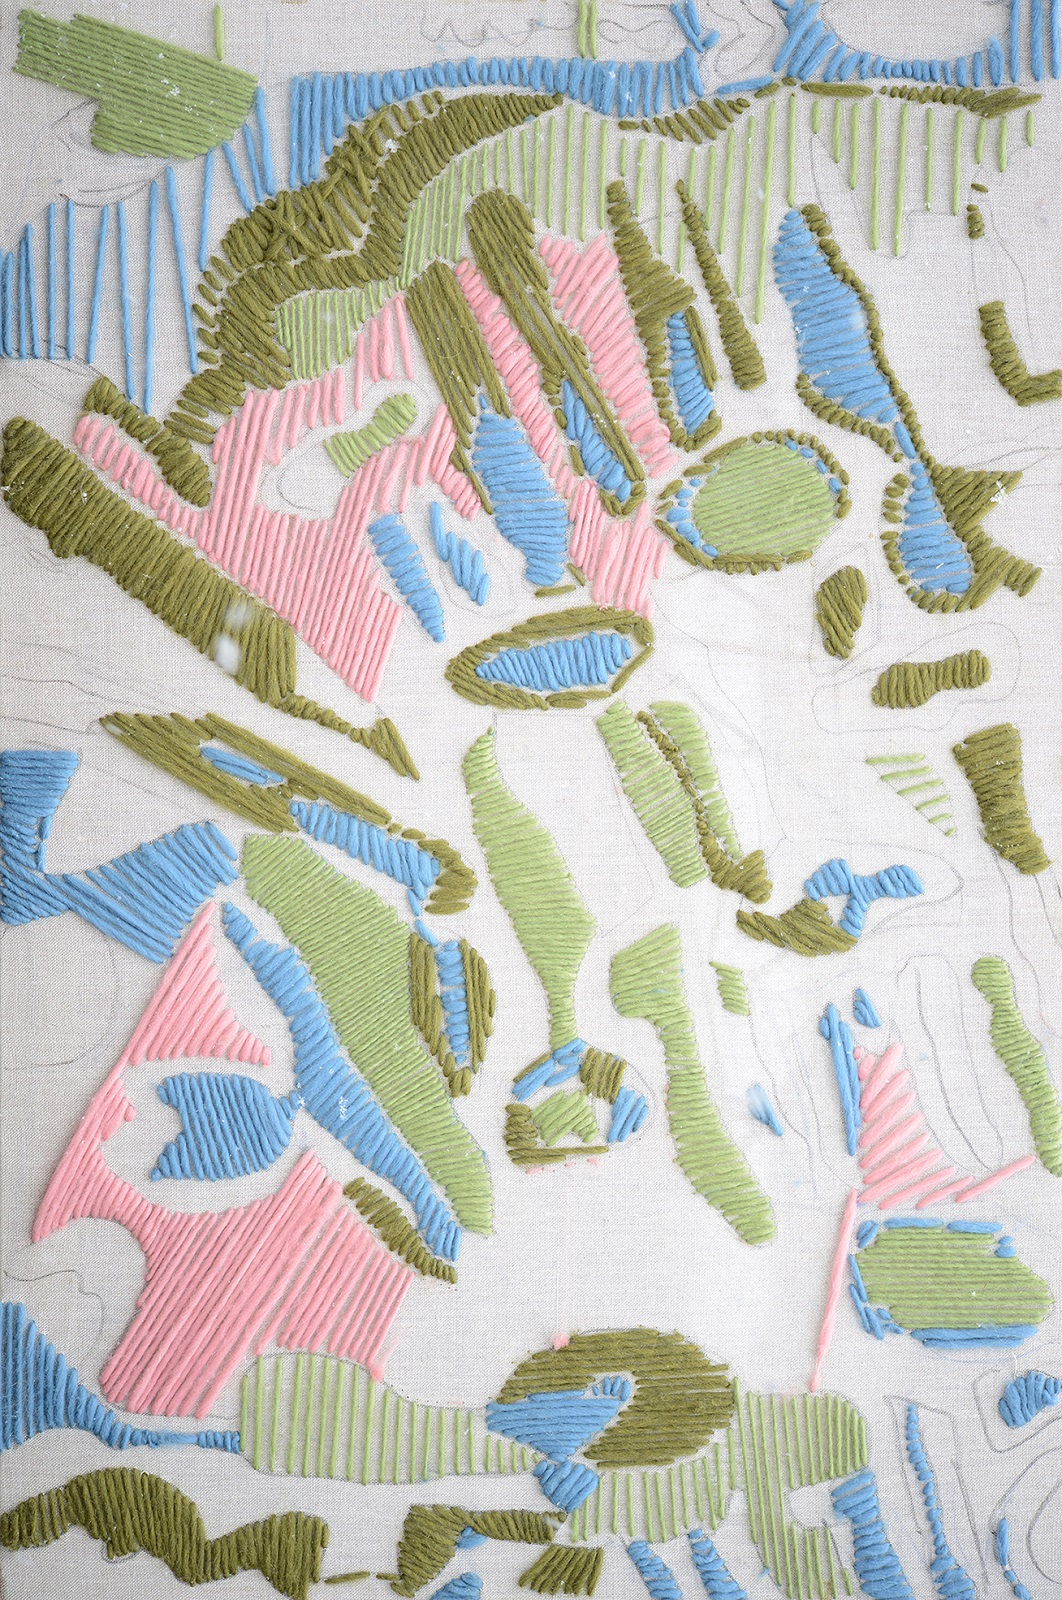 Pattern 1 2016 Wool and Linen 30 by 40 inches